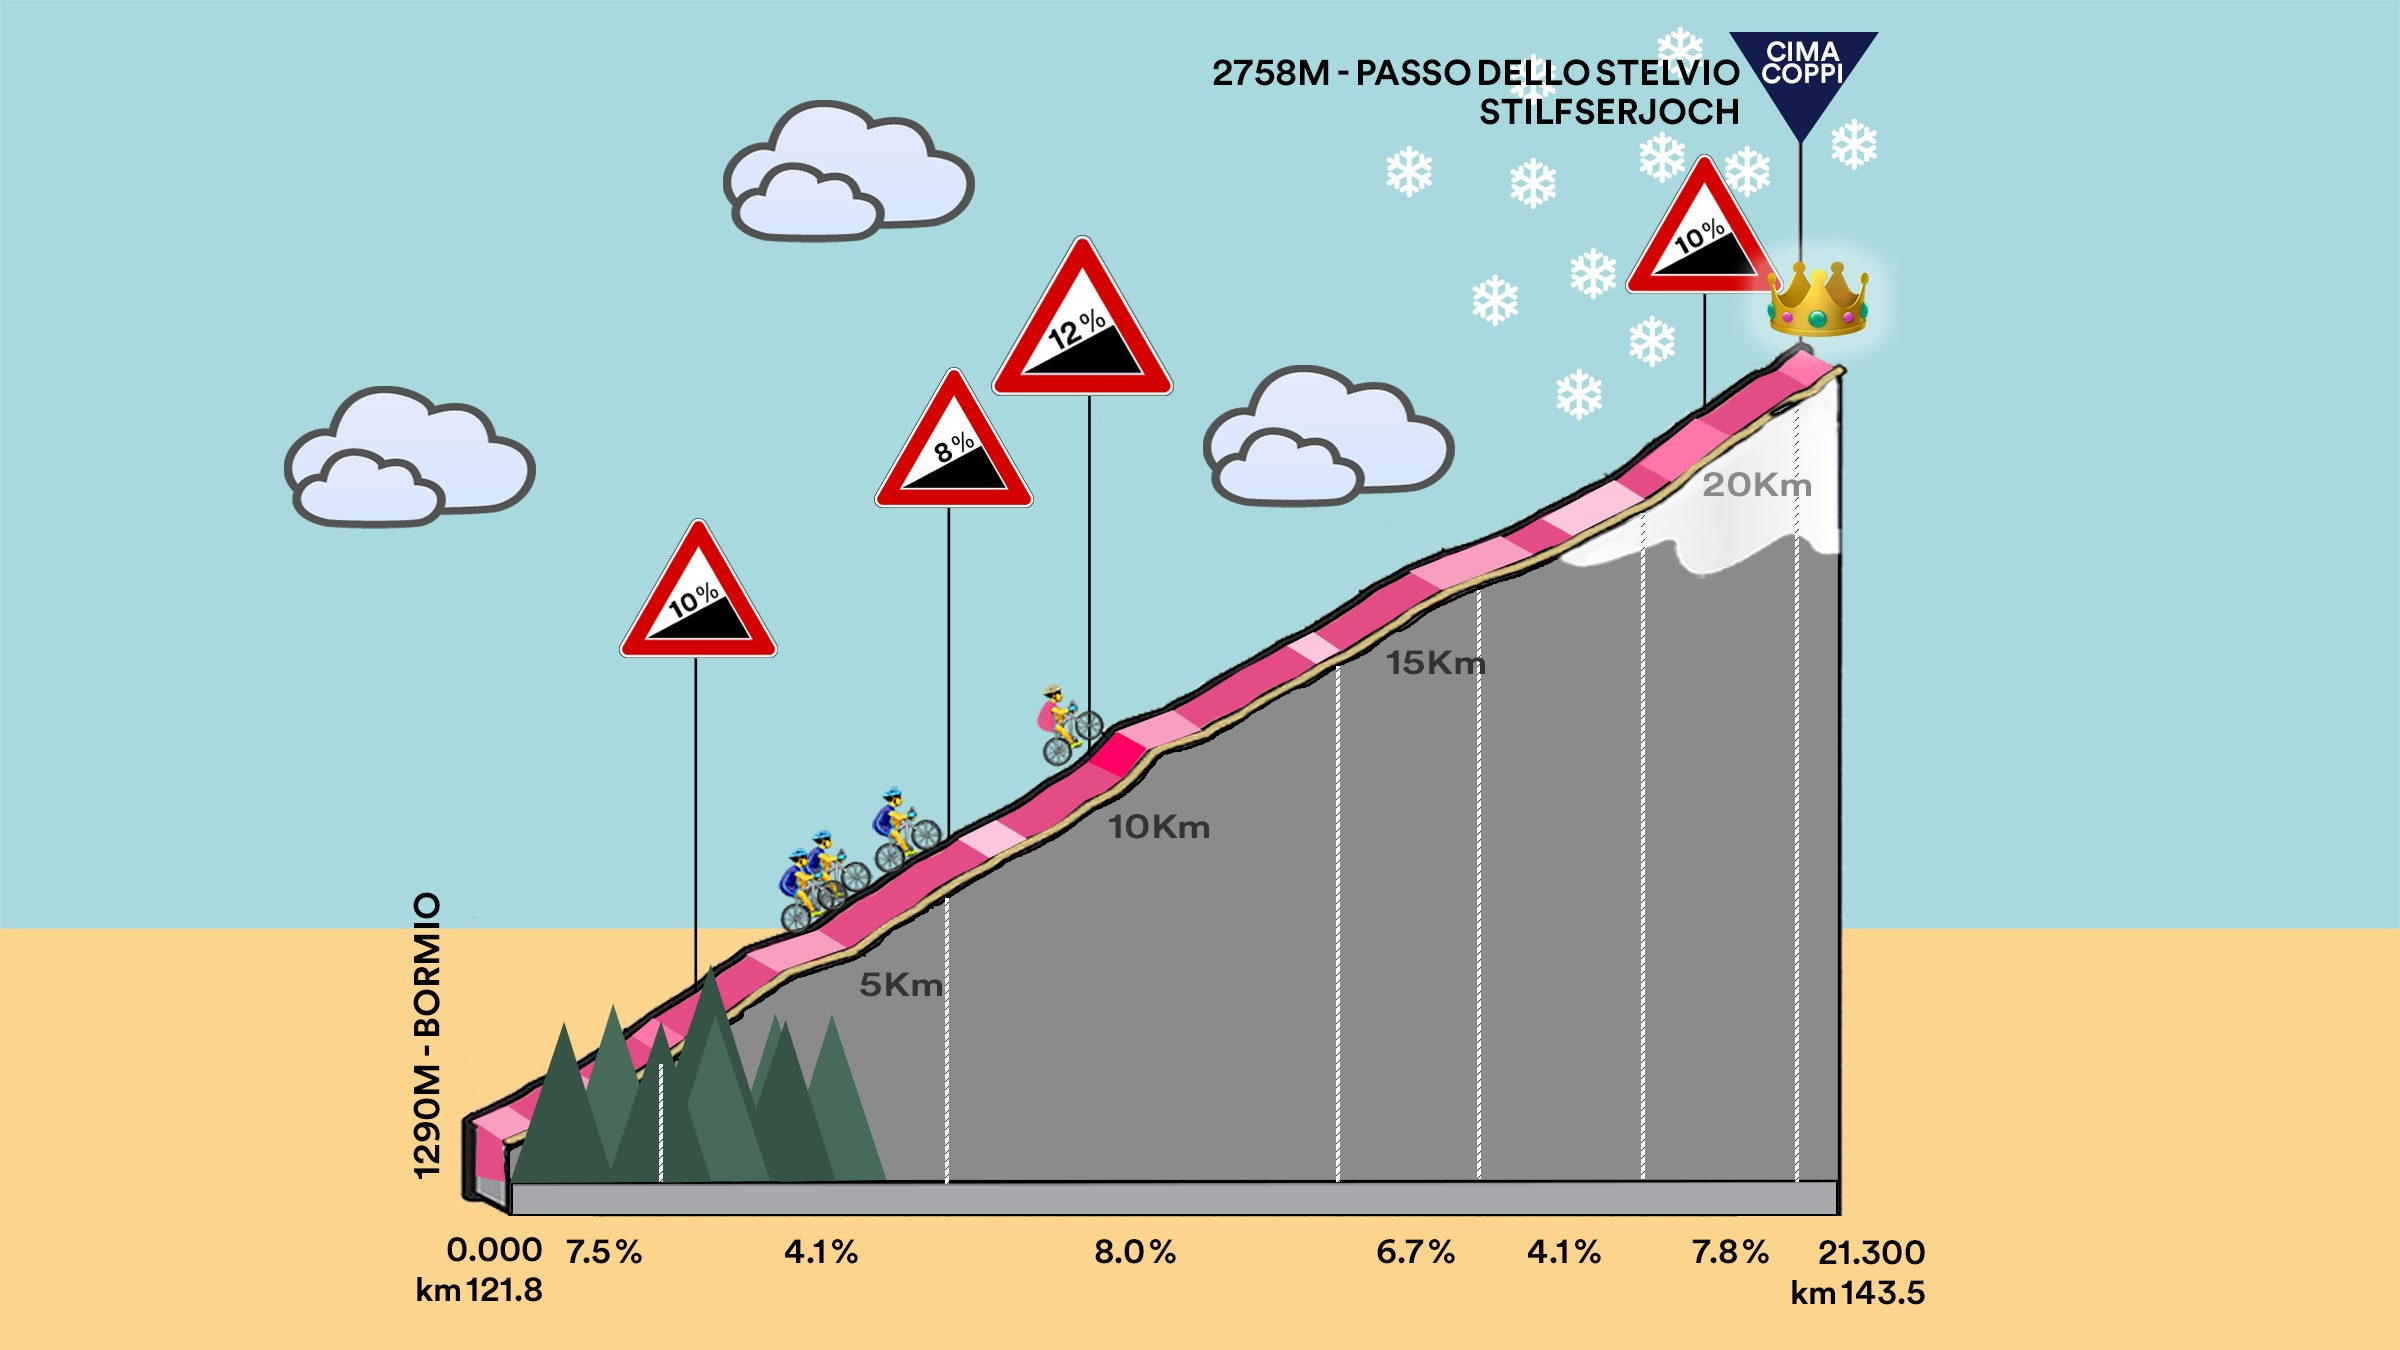 The Stelvio stage profile